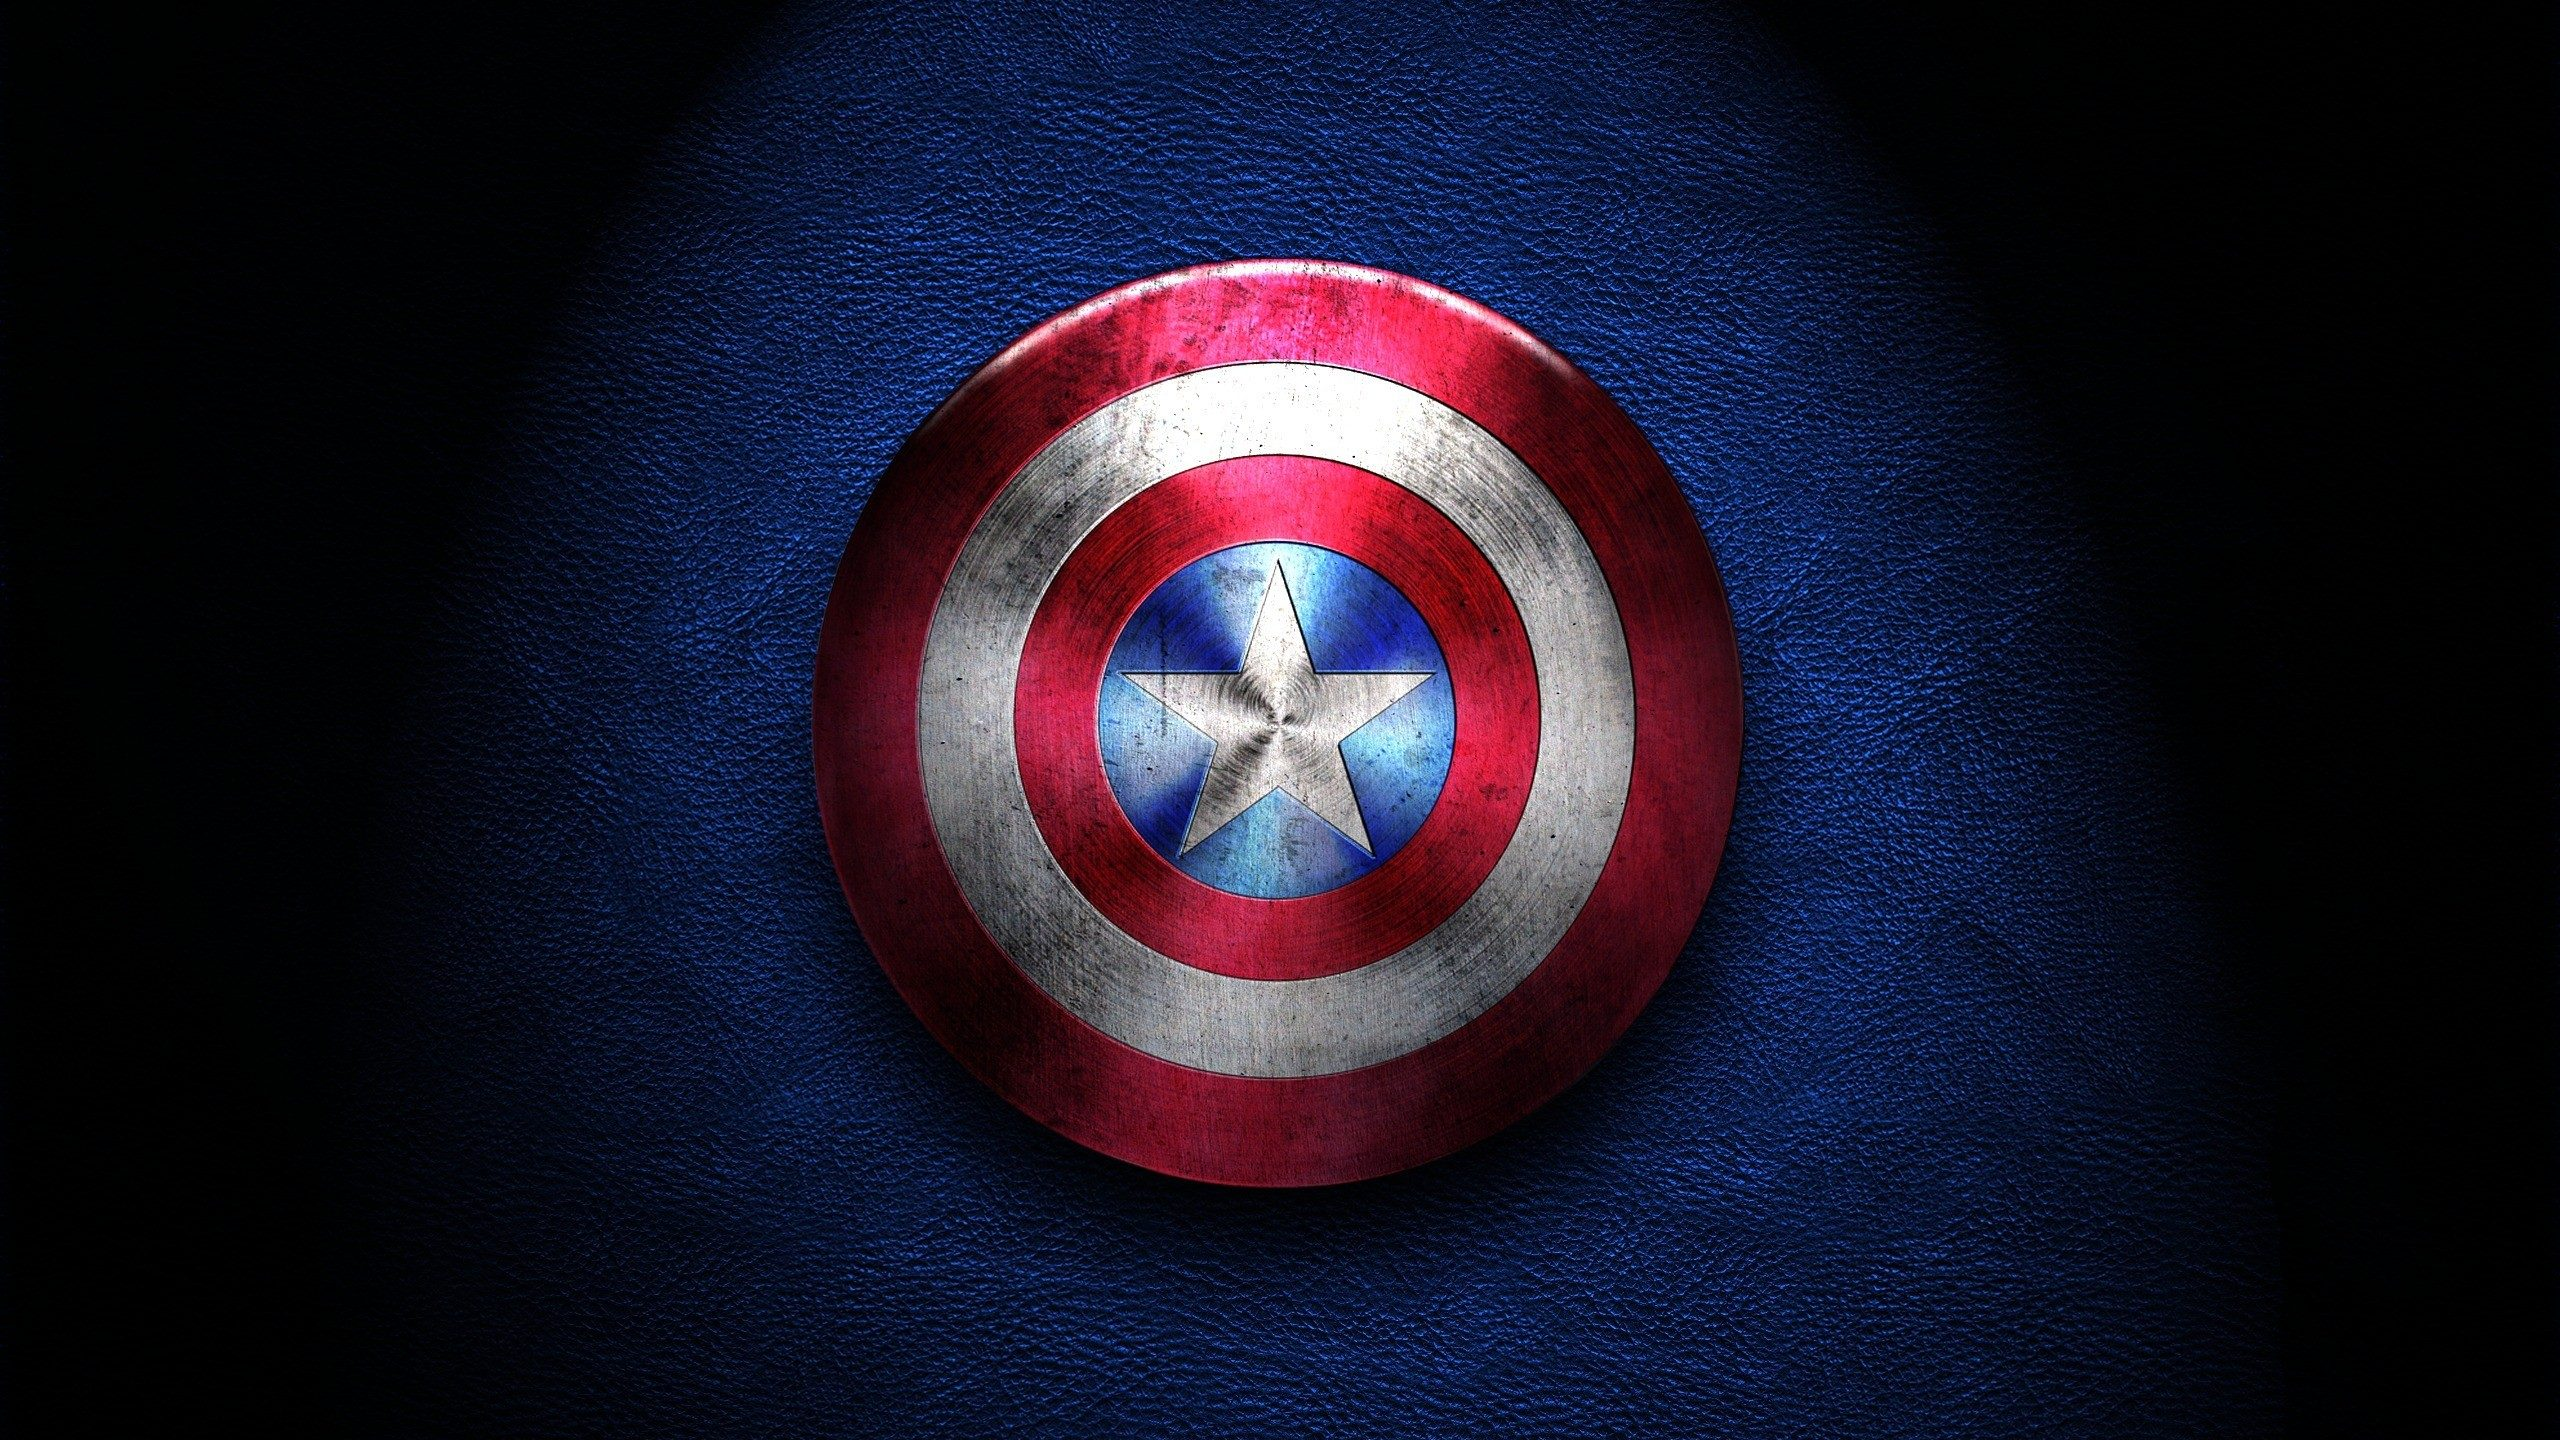 Captain america 39 s shield hd wallpaper - Captain america hd images download ...